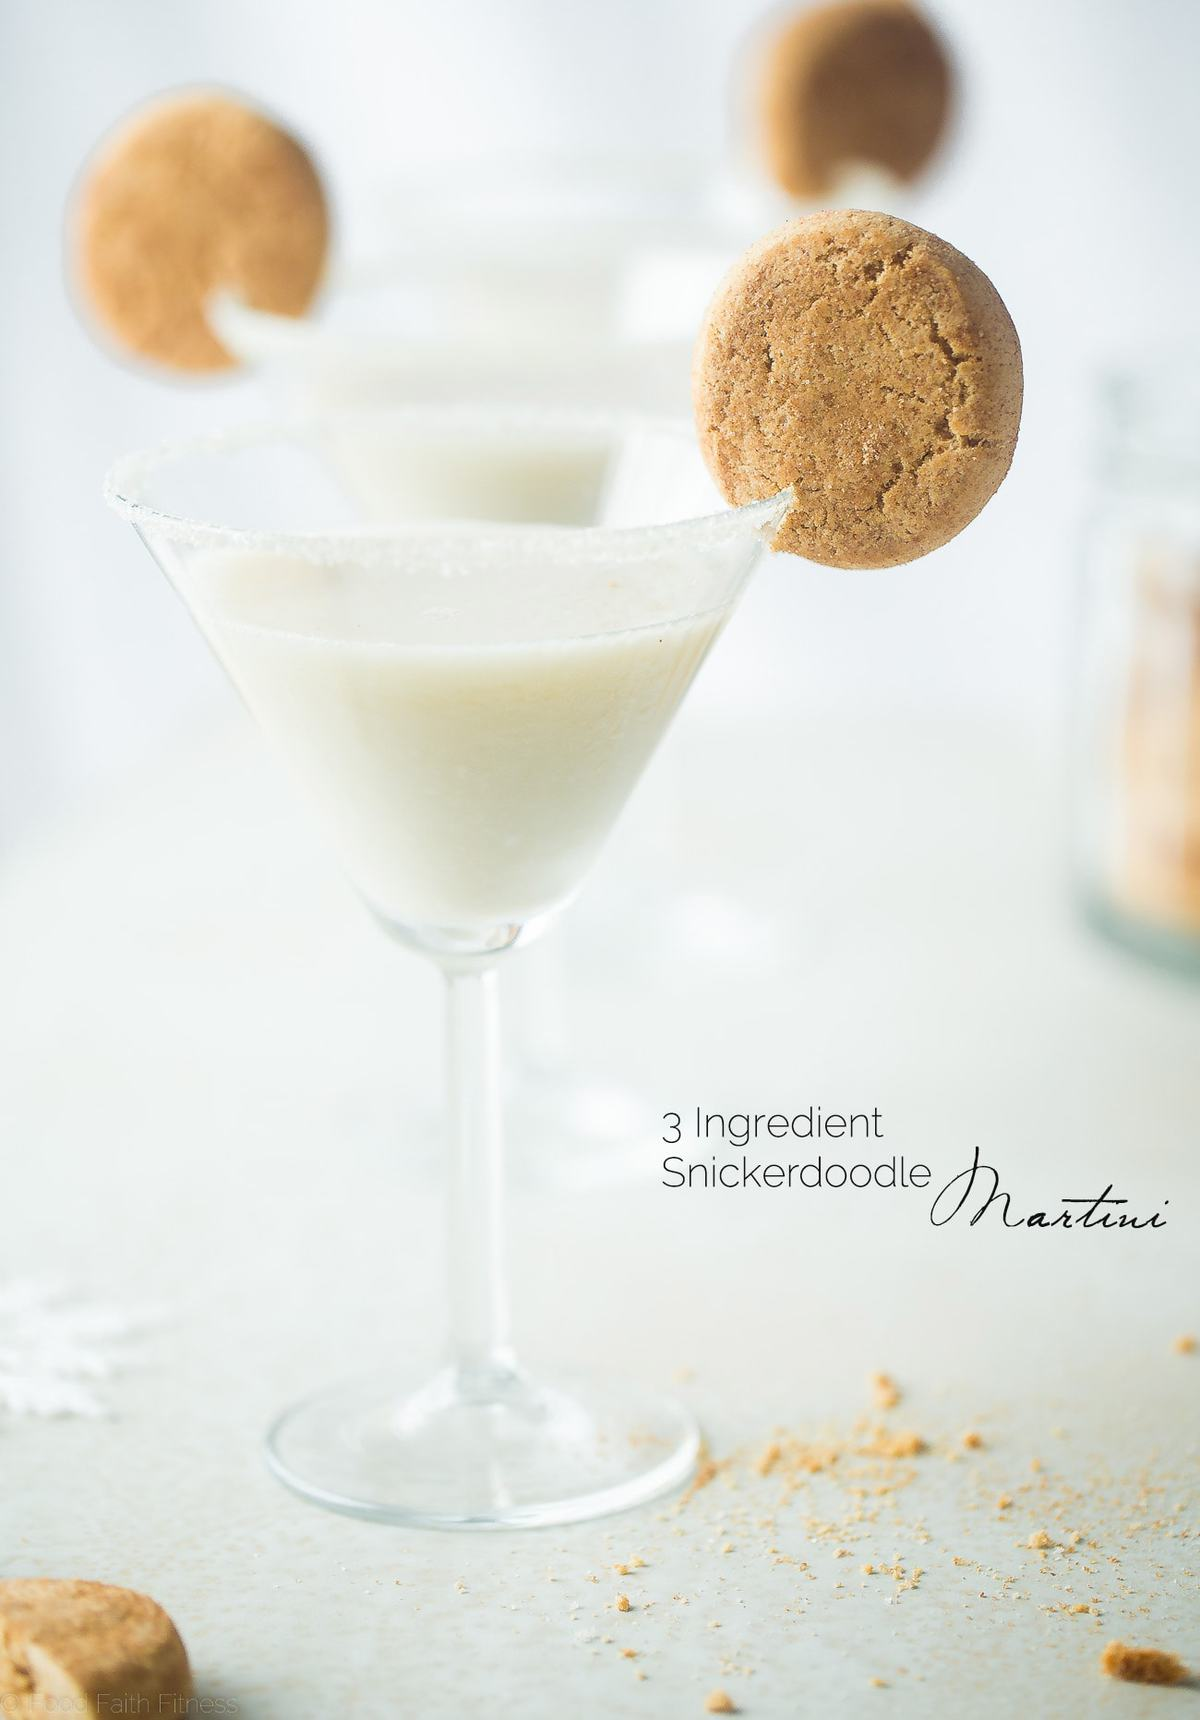 This easy, 3 ingredient martini tastes like a snickerdoodle cookie! It's a creamy, healthier and dairy-free cocktail that is perfect to serve on Christmas!